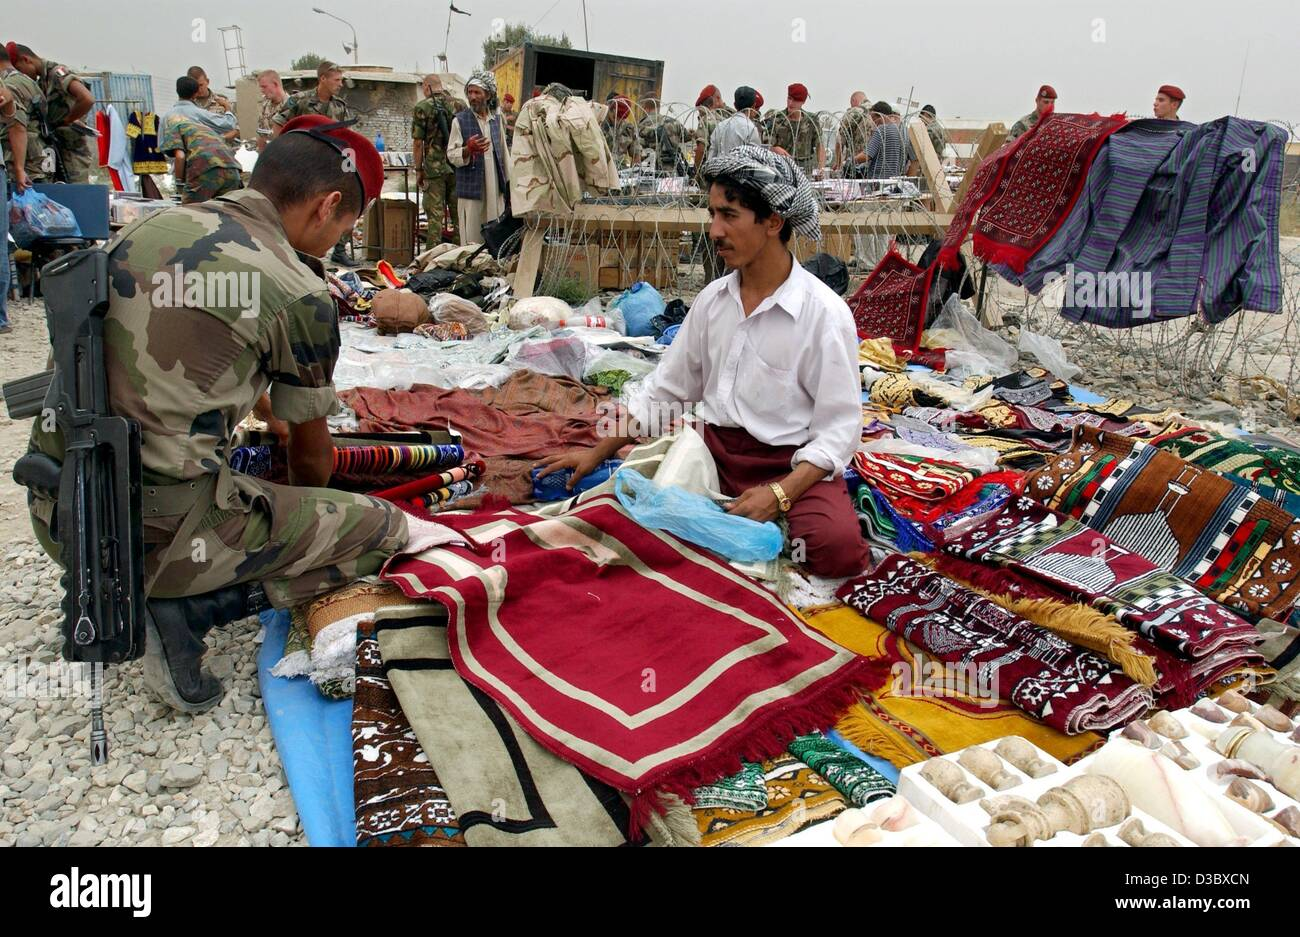 (dpa) - A German soldier looks, in his spare time, through stacks of carpets, textiles and other merchandise at - Stock Image